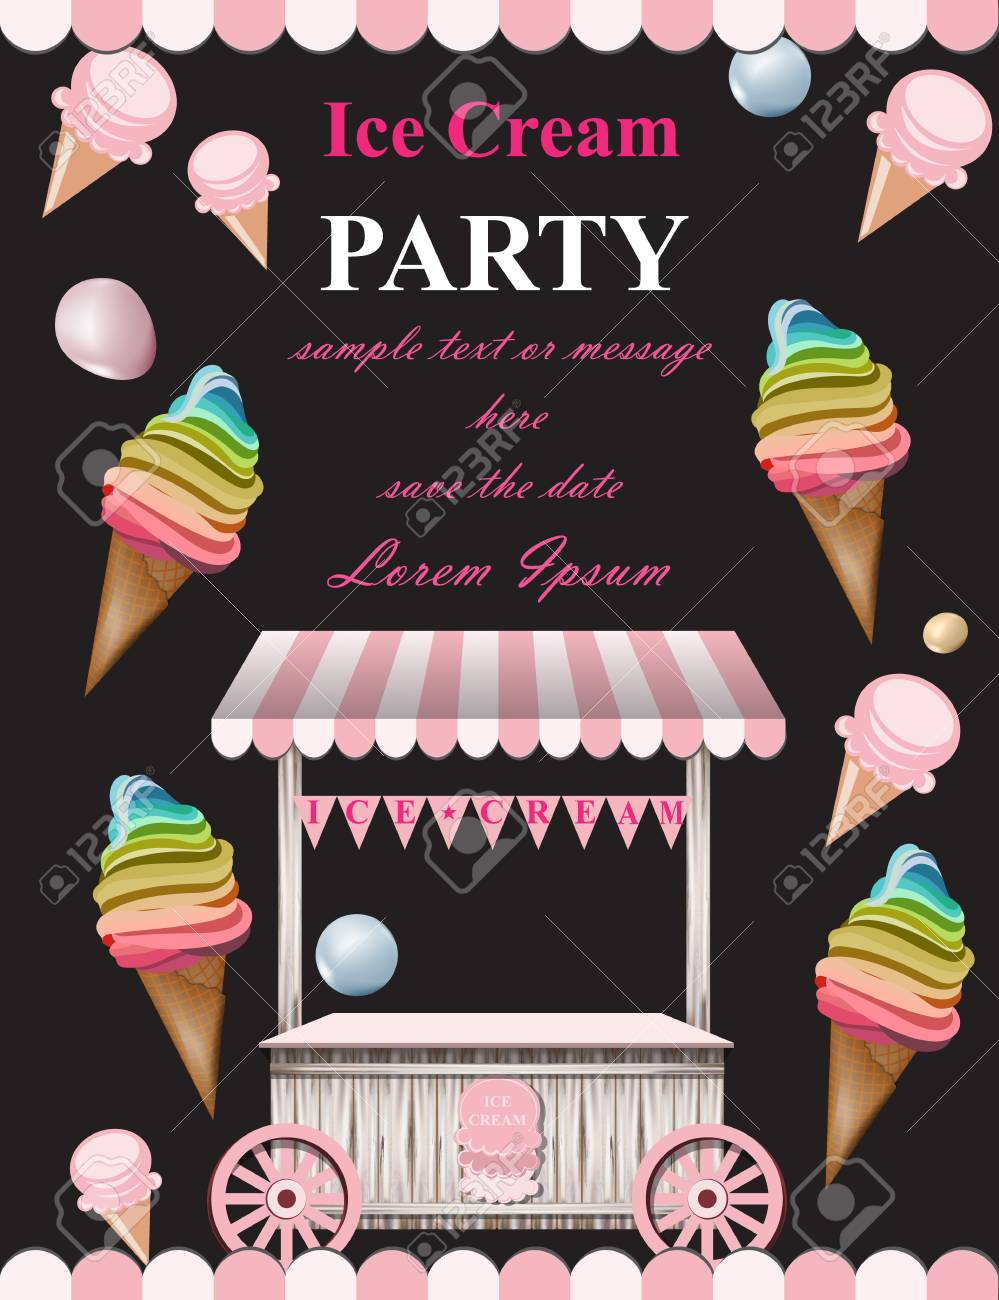 Ice Cream Party Invitation Card Vector Summer Booth Birthday Or Event